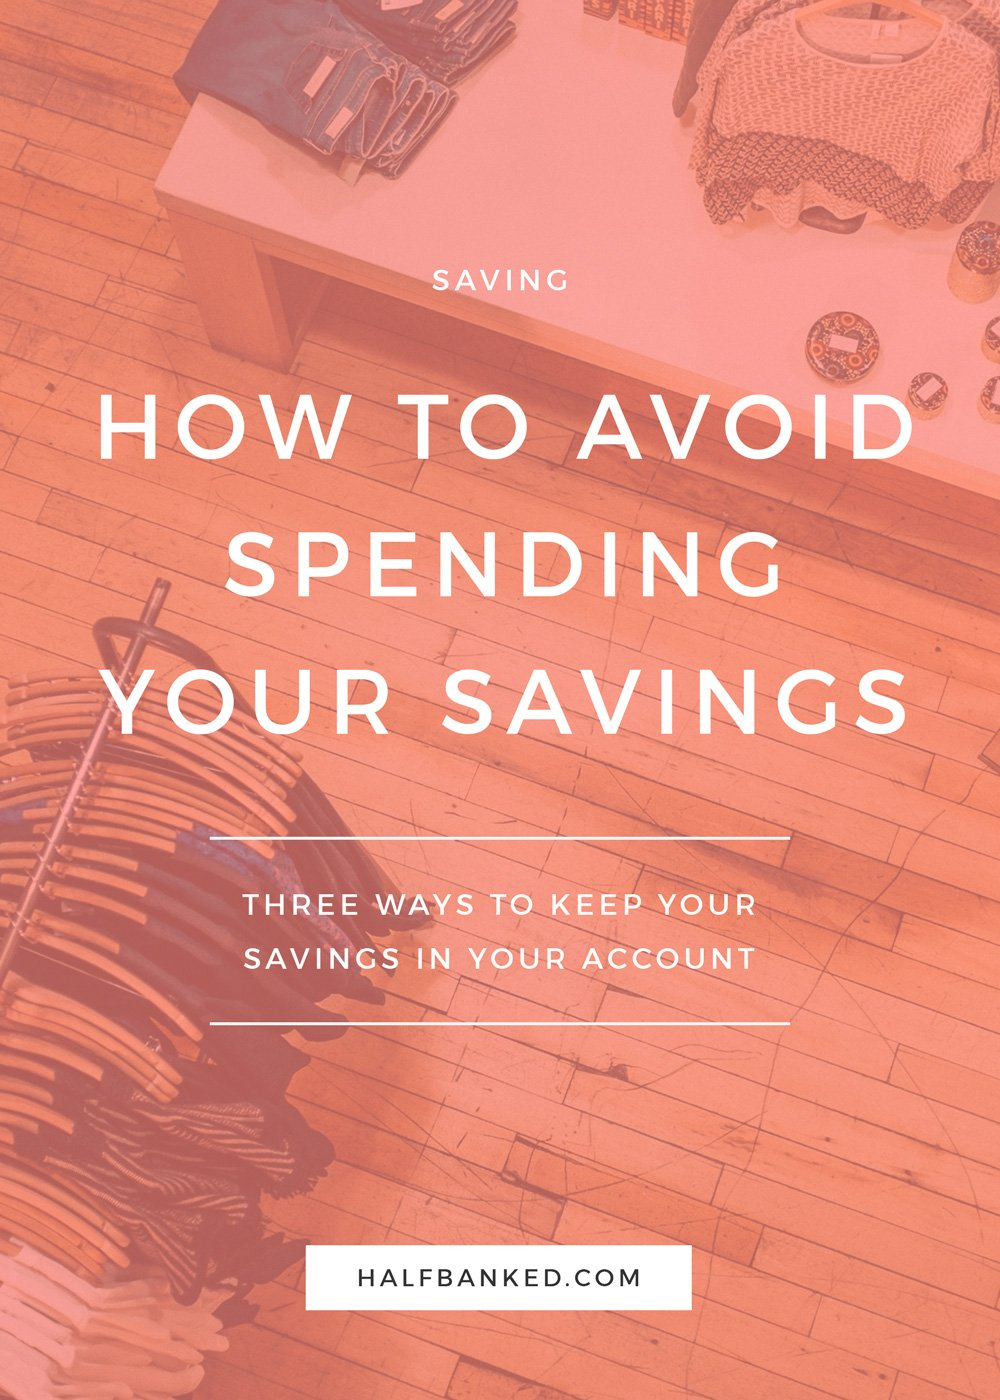 Three fool-proof ways to keep your money where you want it - in your savings account, helping you achieve your money goals. Yes, even if you have a hard time leaving it there!